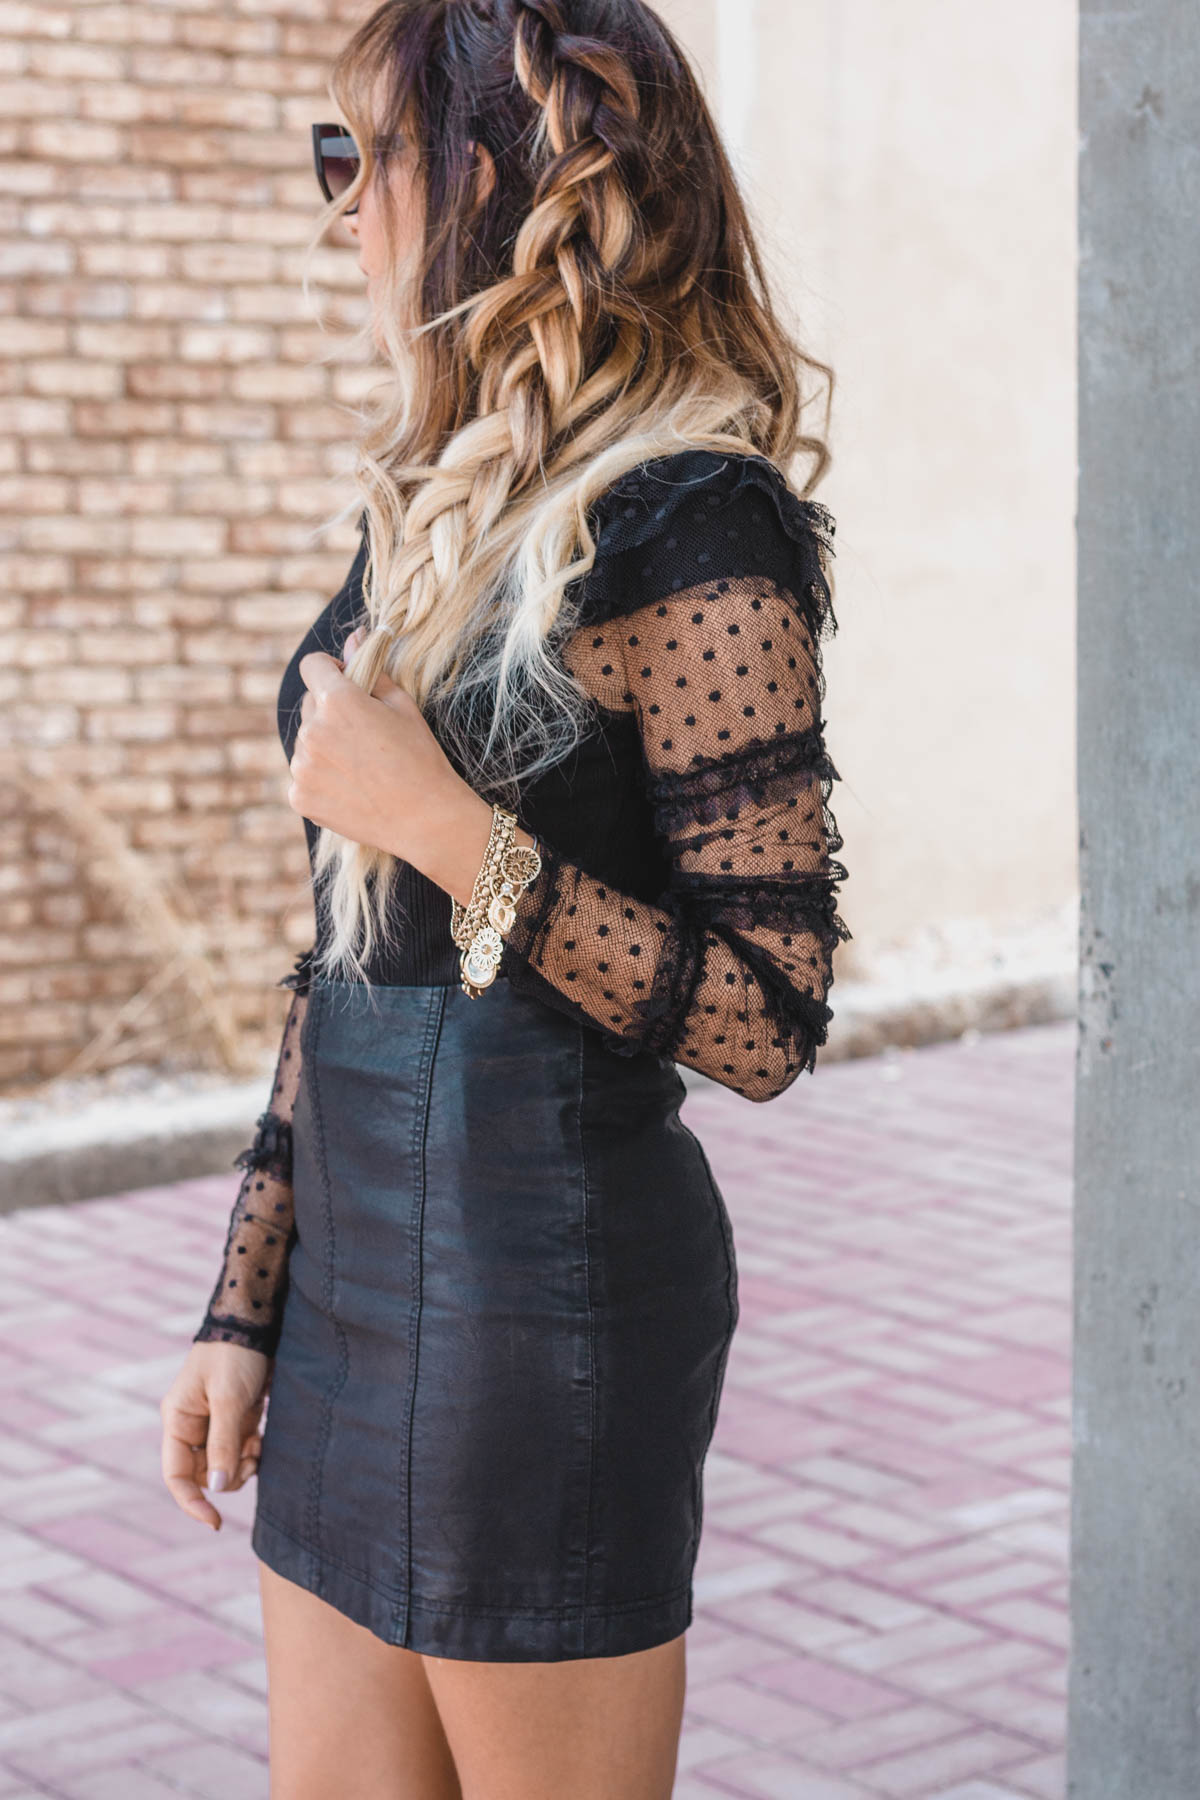 How to Style All Black for Holiday - All Black Outfit